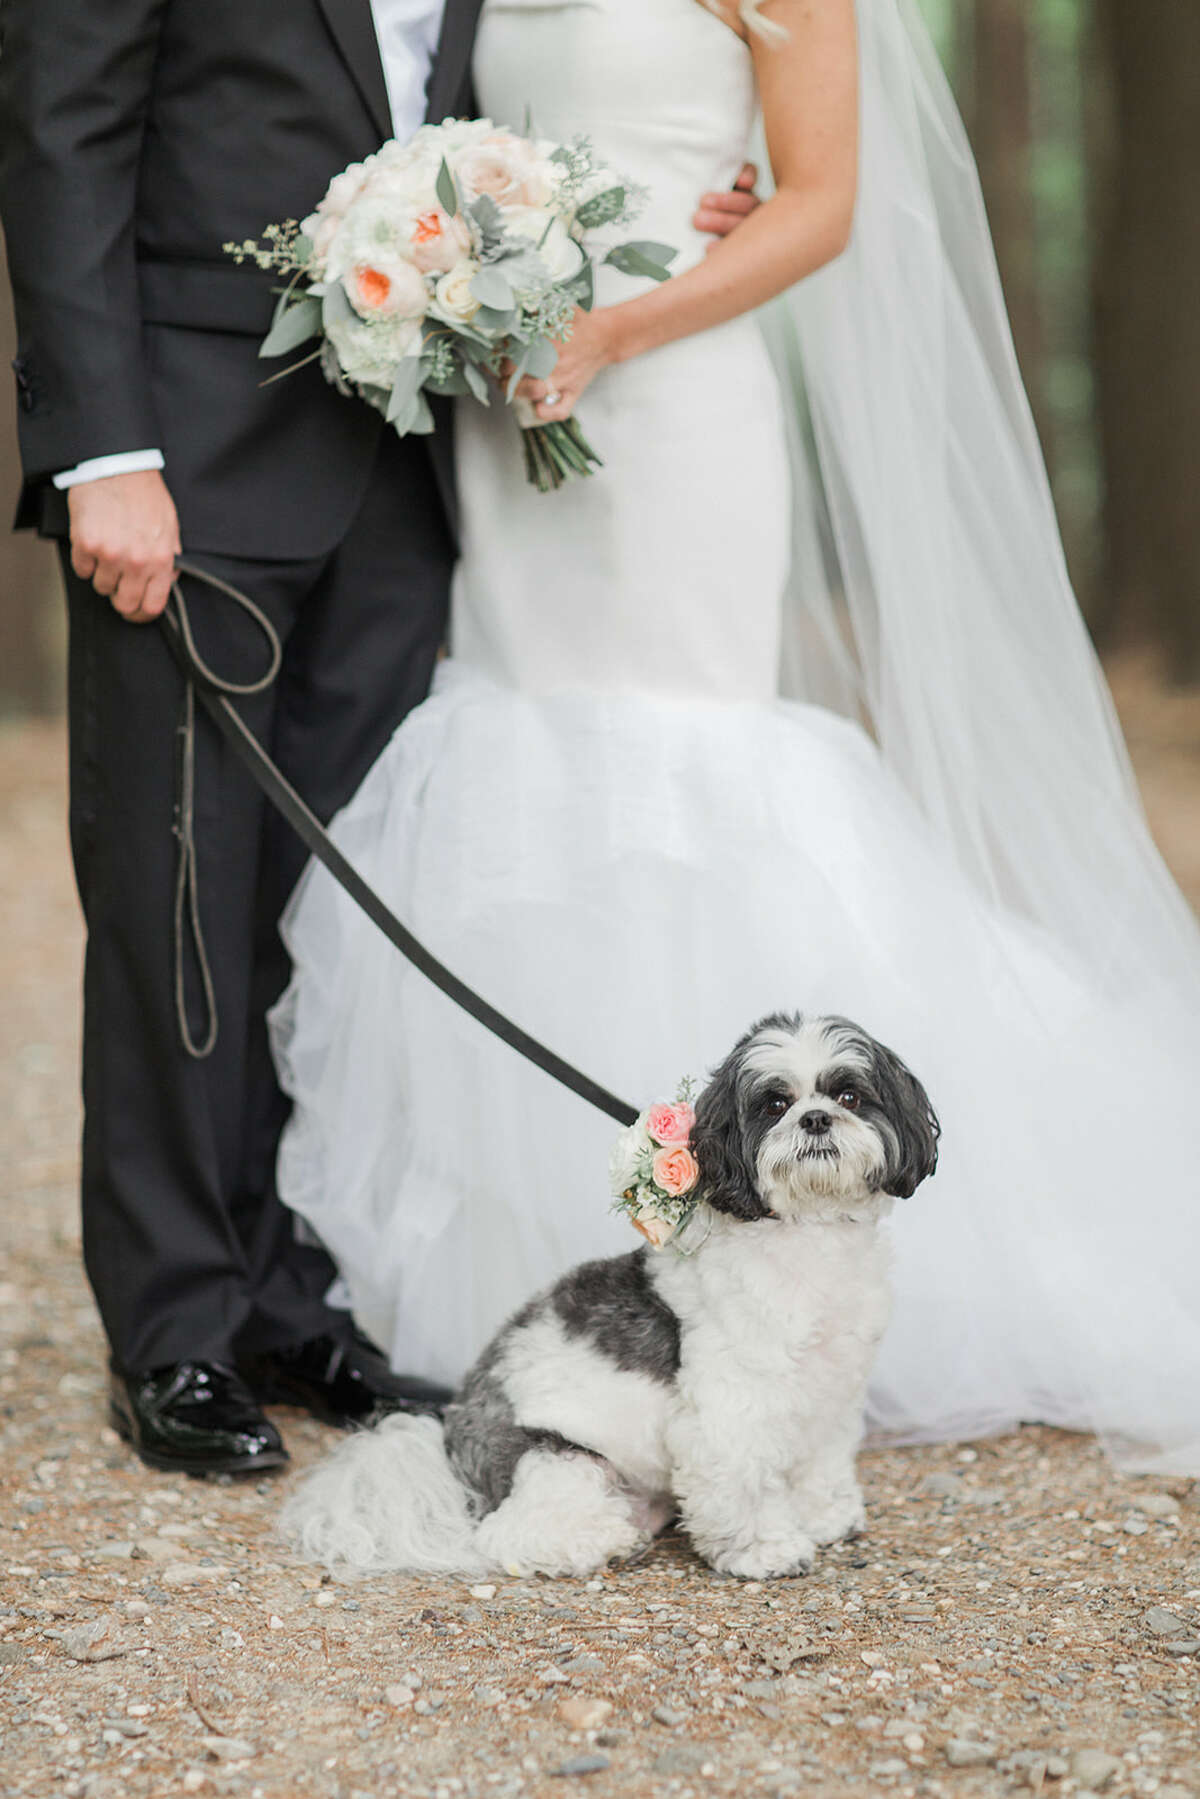 Want more local wedding coverage? Read the rest of Vow magazine's latest stories. (Photo by Dyanna Lamora Photography)